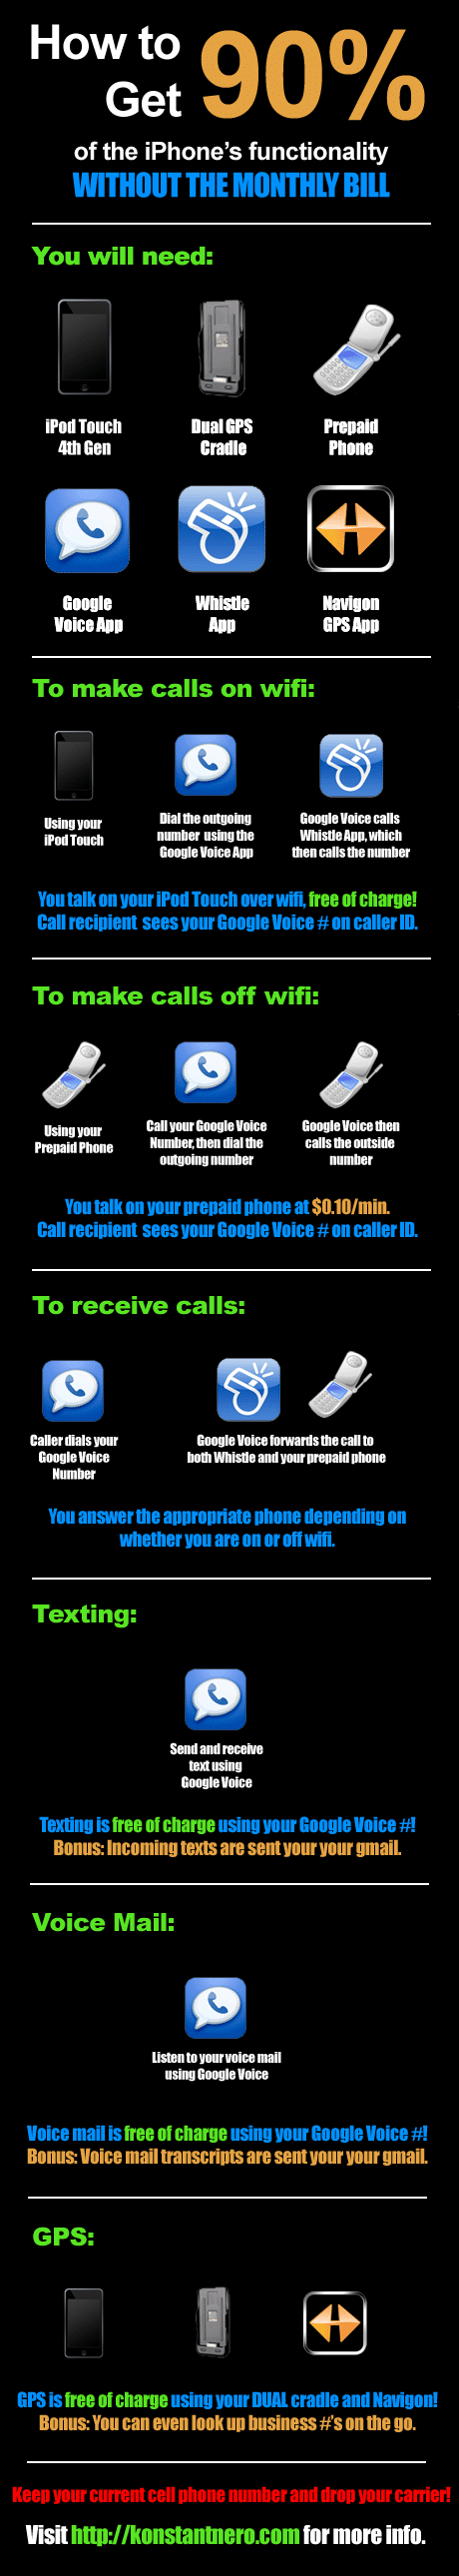 How To Get 90% Of The iPhone's Functionality For Free [Infographic]